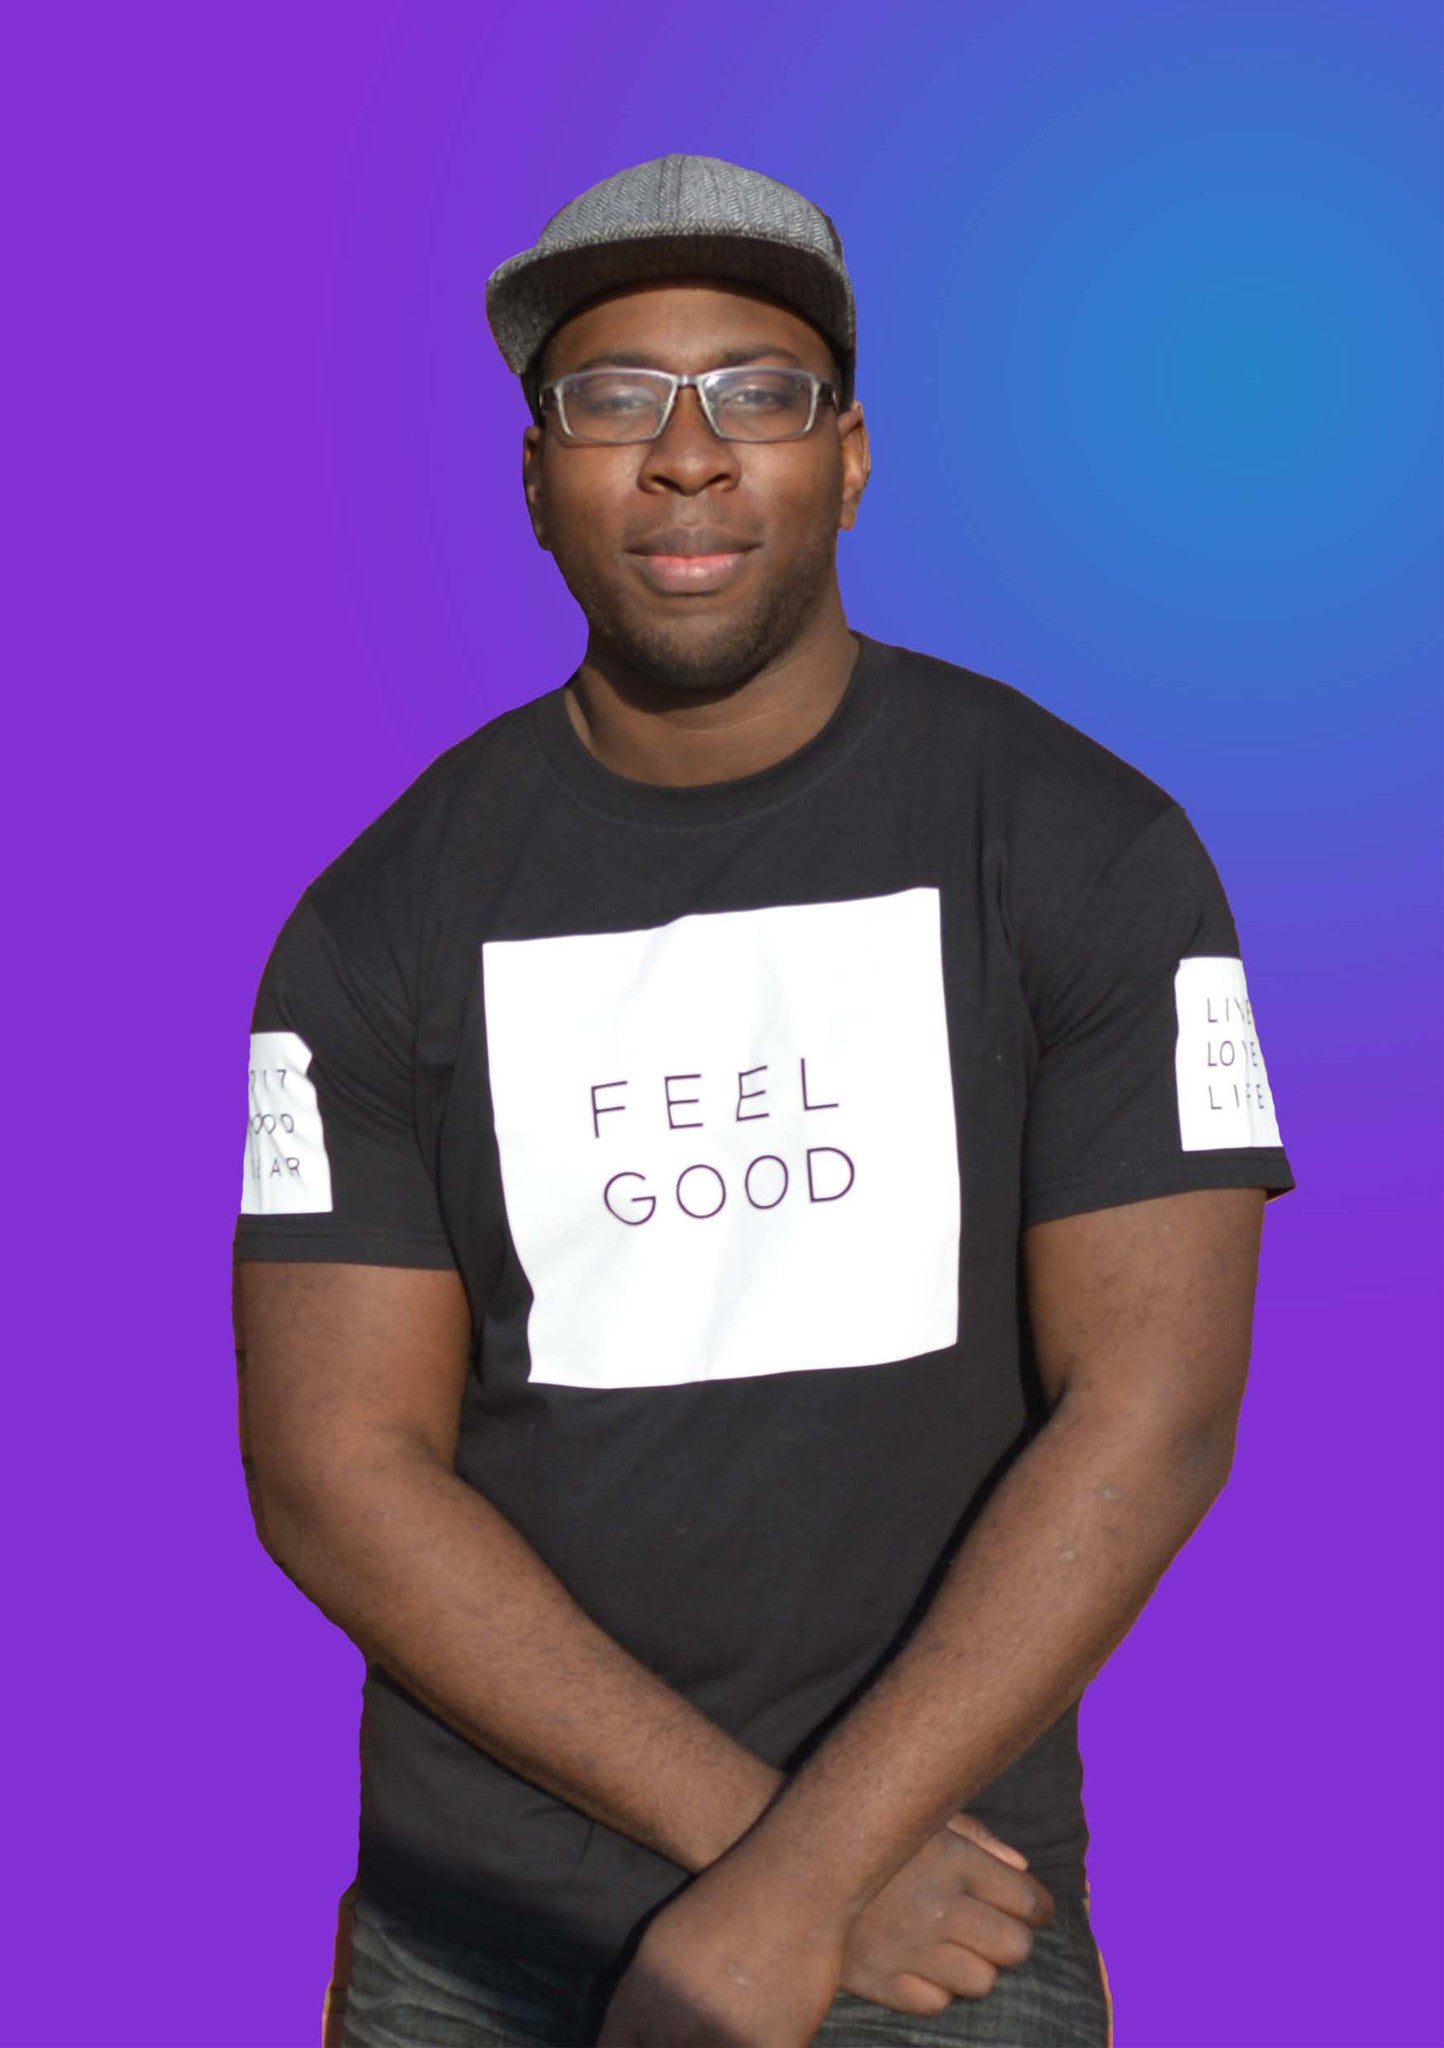 Feel Good 2017 T-shirt